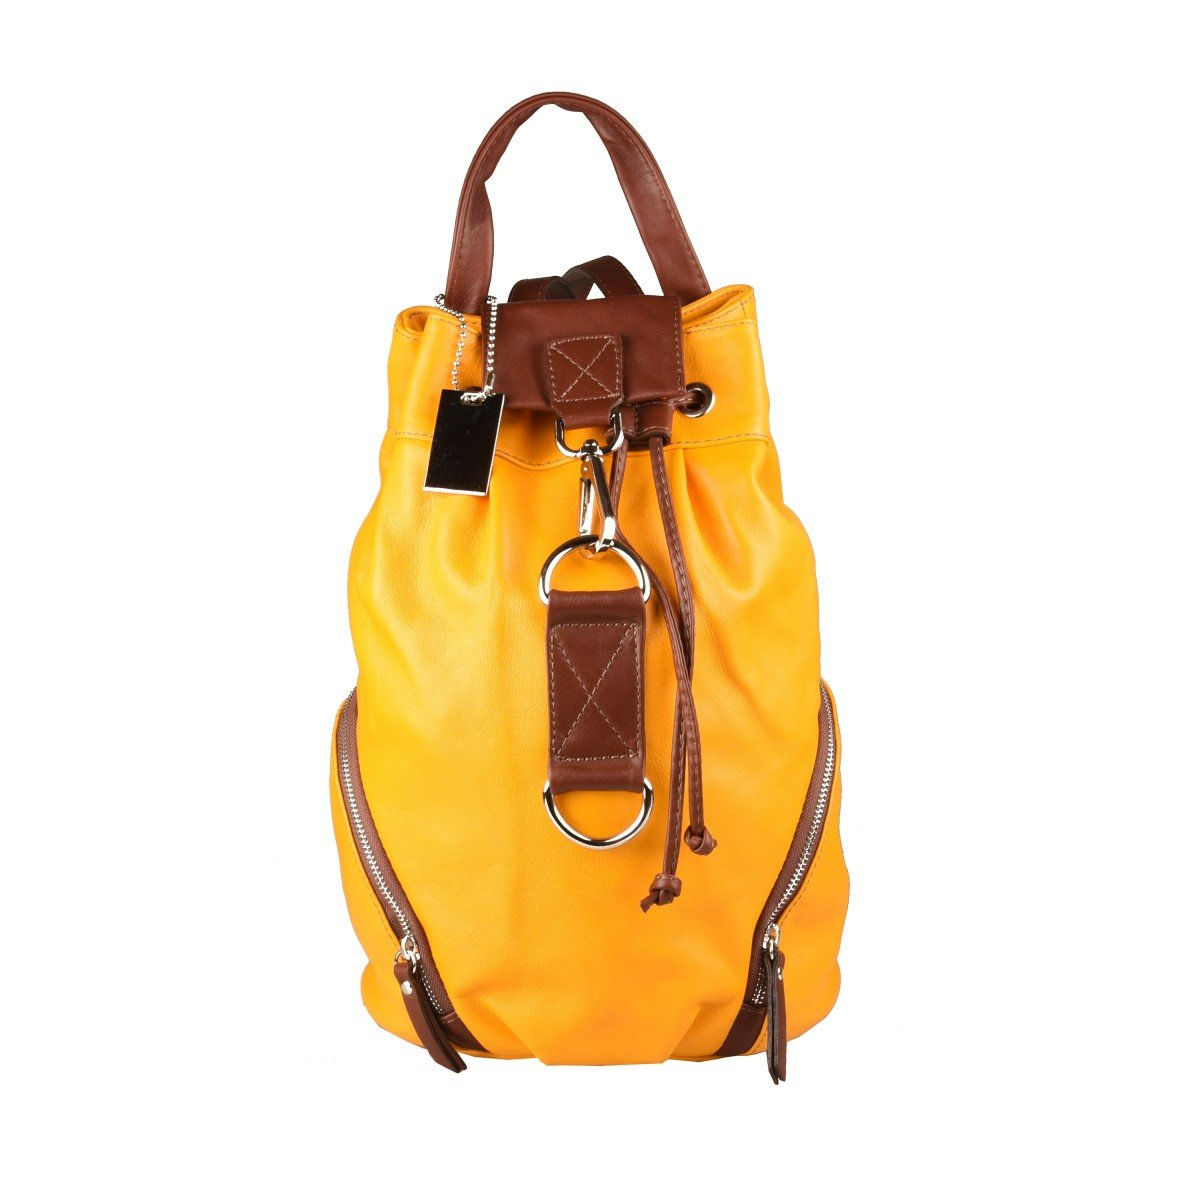 Dream Leather Bags Made in Italy Genuine Leather レディース 565-8 US サイズ: 1 M US カラー: イエロー   B07CV8915K